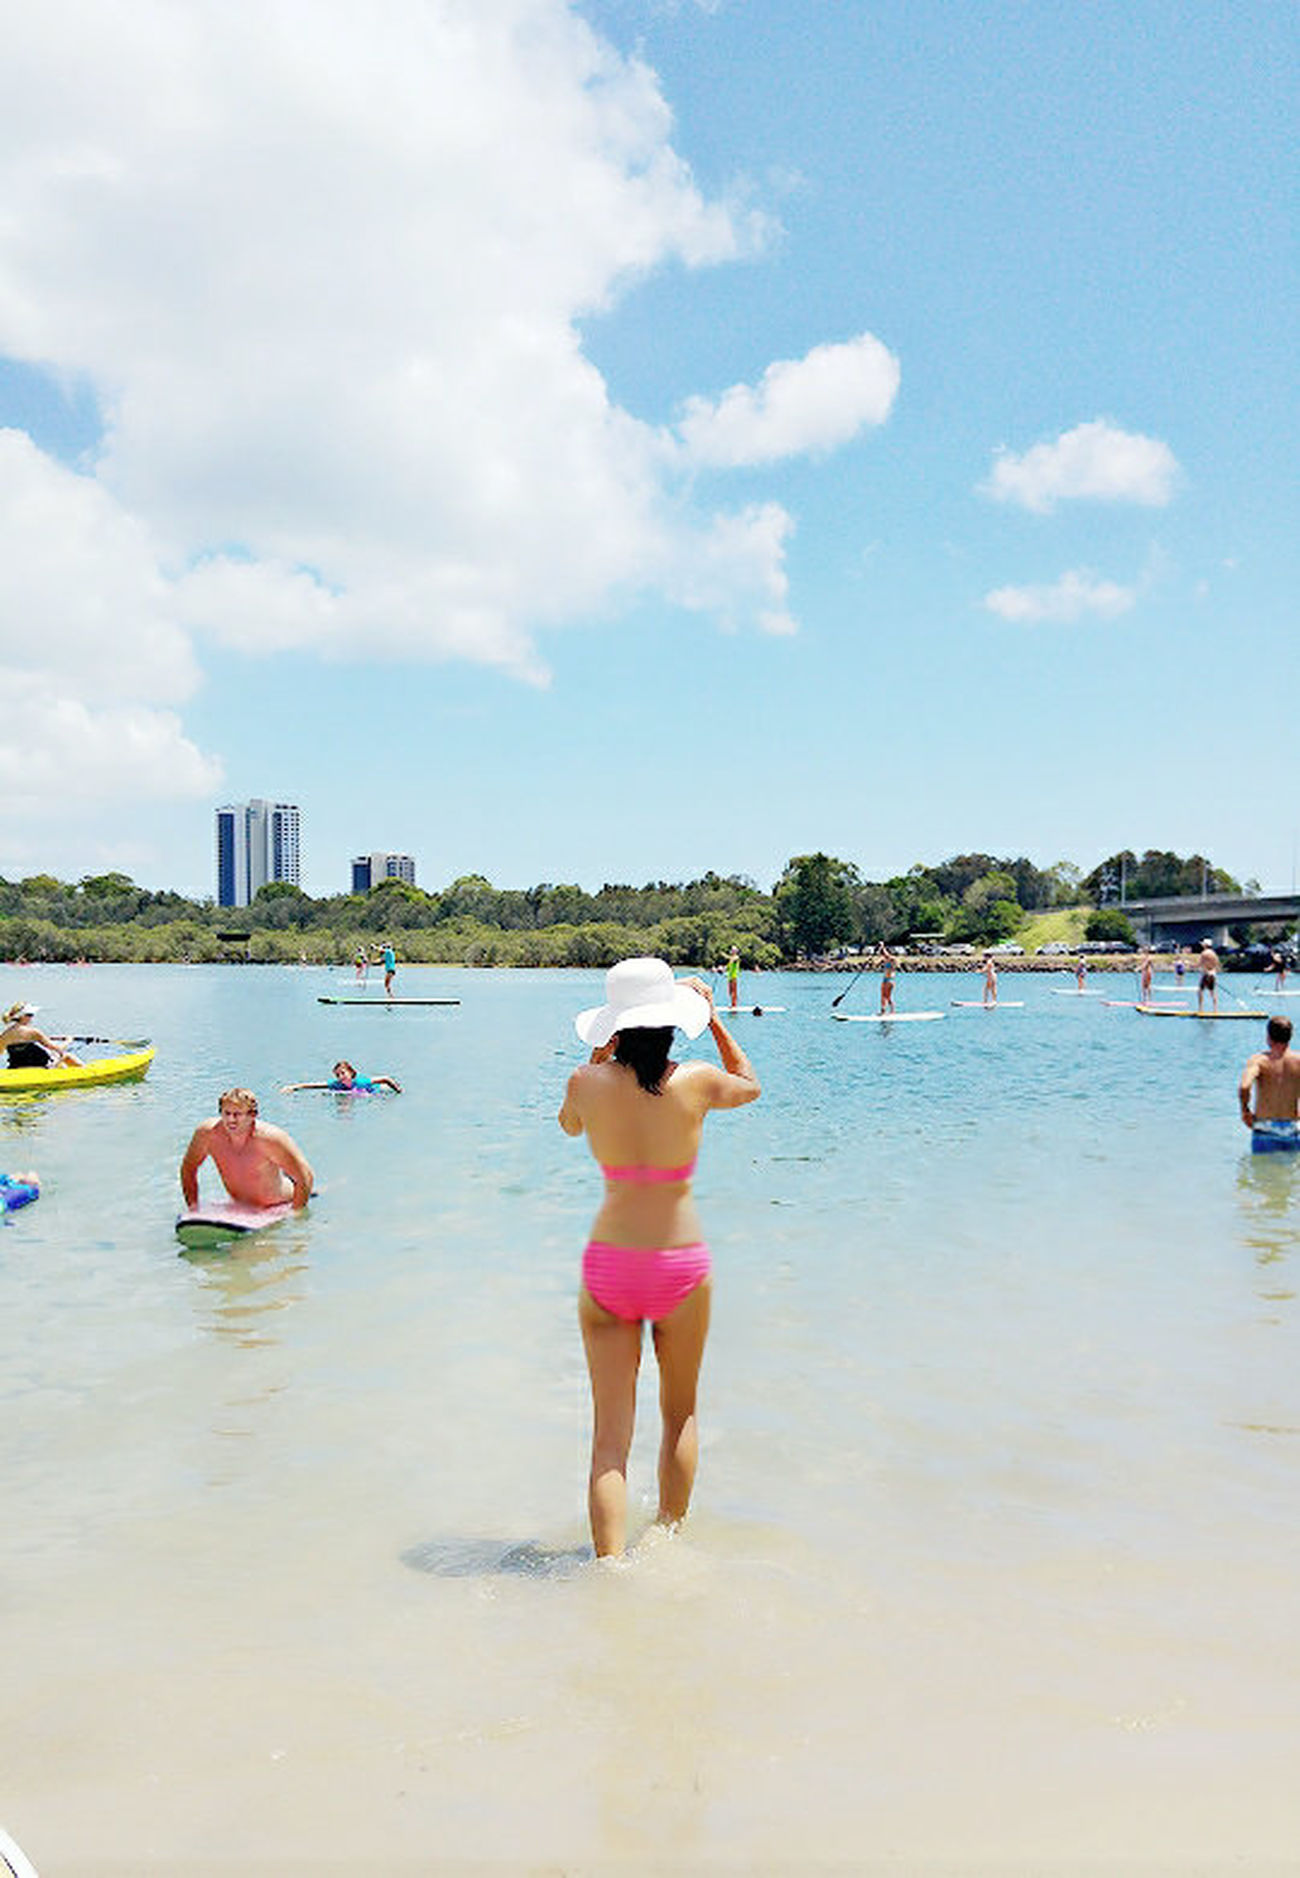 Water Vacations Full Length Rear View Relaxation Travel Travel Destinations Sea Enjoyment Beach Outdoors Women Sky Standing Leisure Activity Paddleboarding Bikinis Beauty In Nature Beach Life Beachside Swimming Summertime Currumbincreek Gold Coast Queensland A Place To Visit Crystal Clear Waters pink bikini